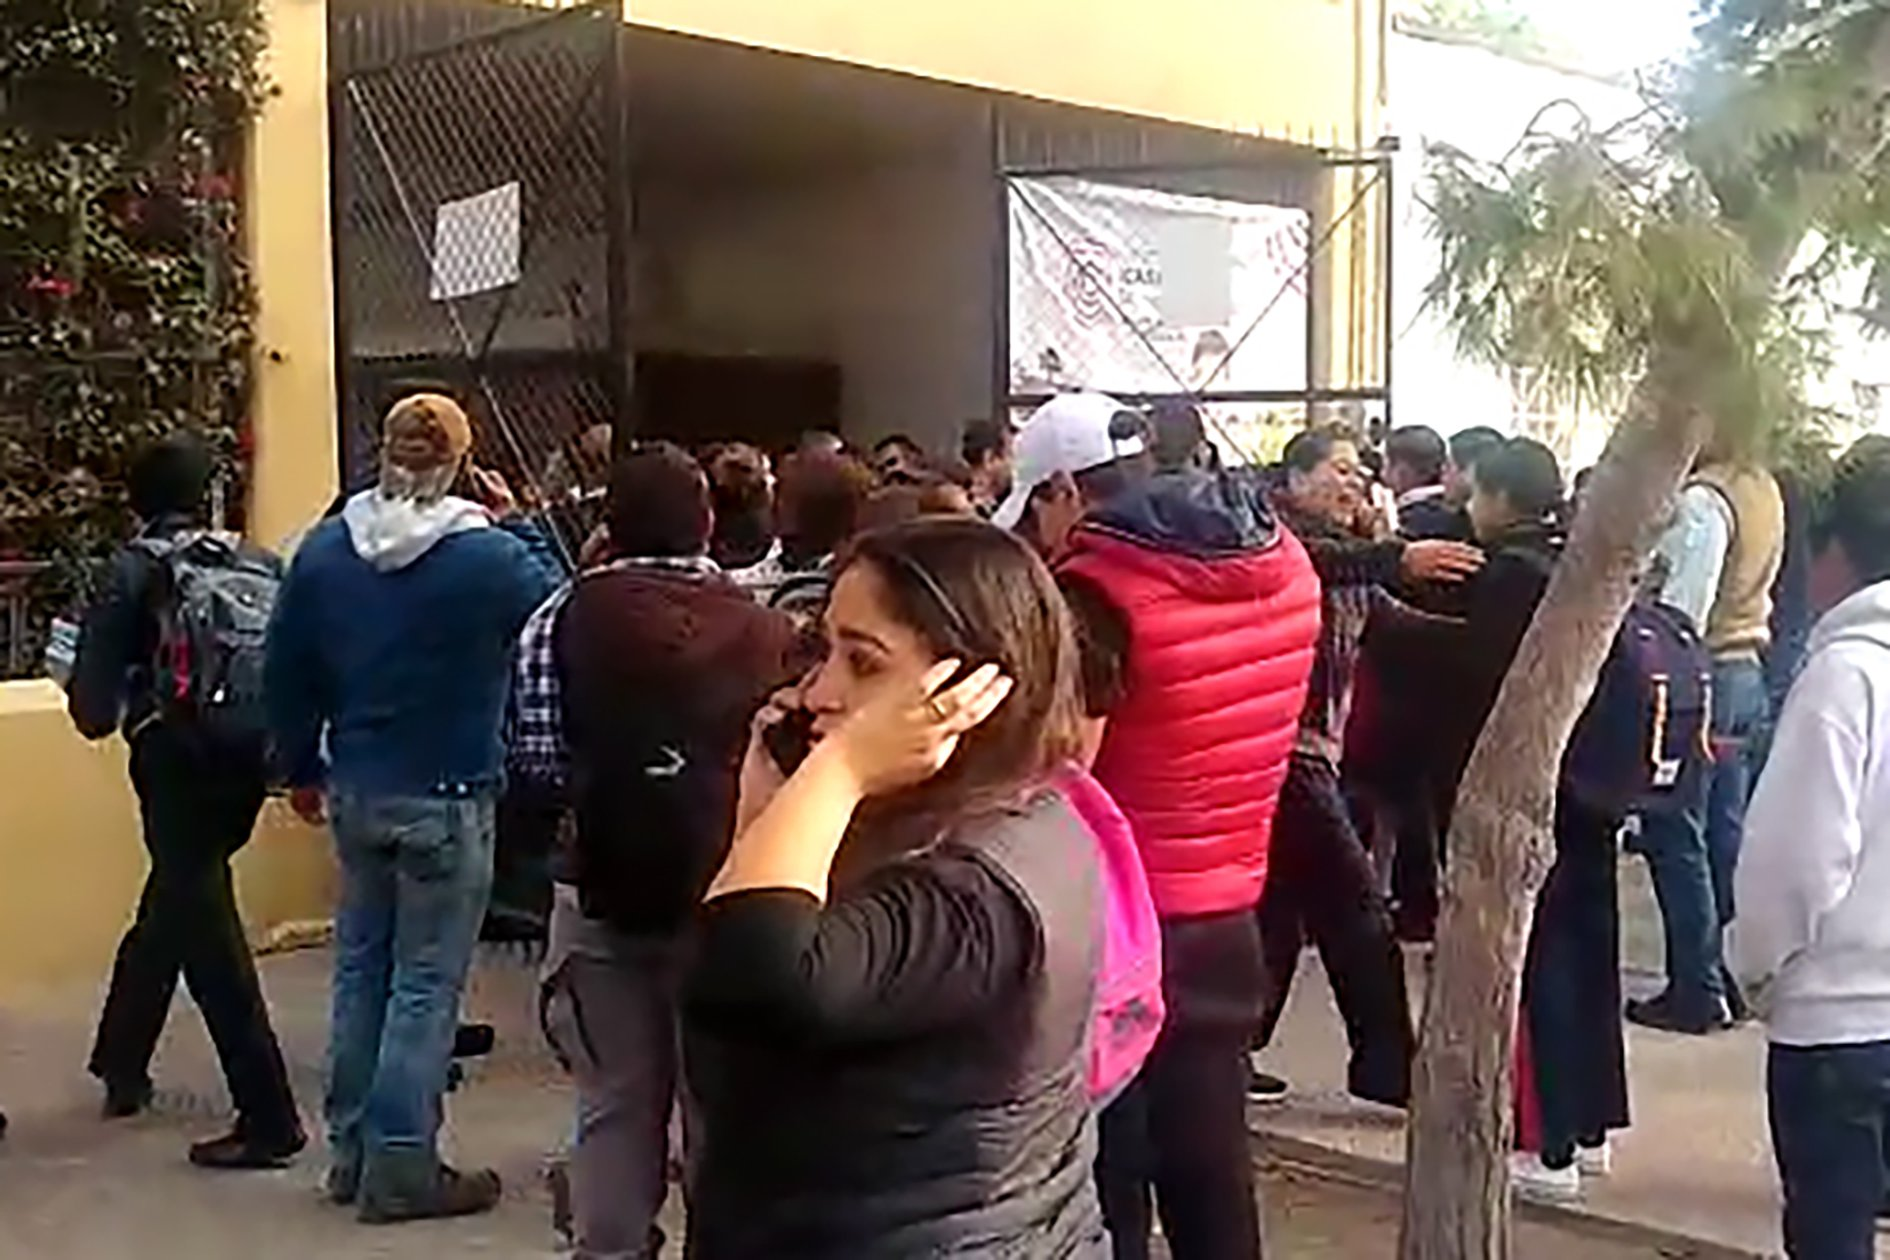 A video grab from AFP TV shows relatives of students outside of a school in Torreon, Coahuila state, Mexico, where a shooting occurred on Jan. 10, 2020. (Credit: STR/AFPTV/AFP via Getty Images)